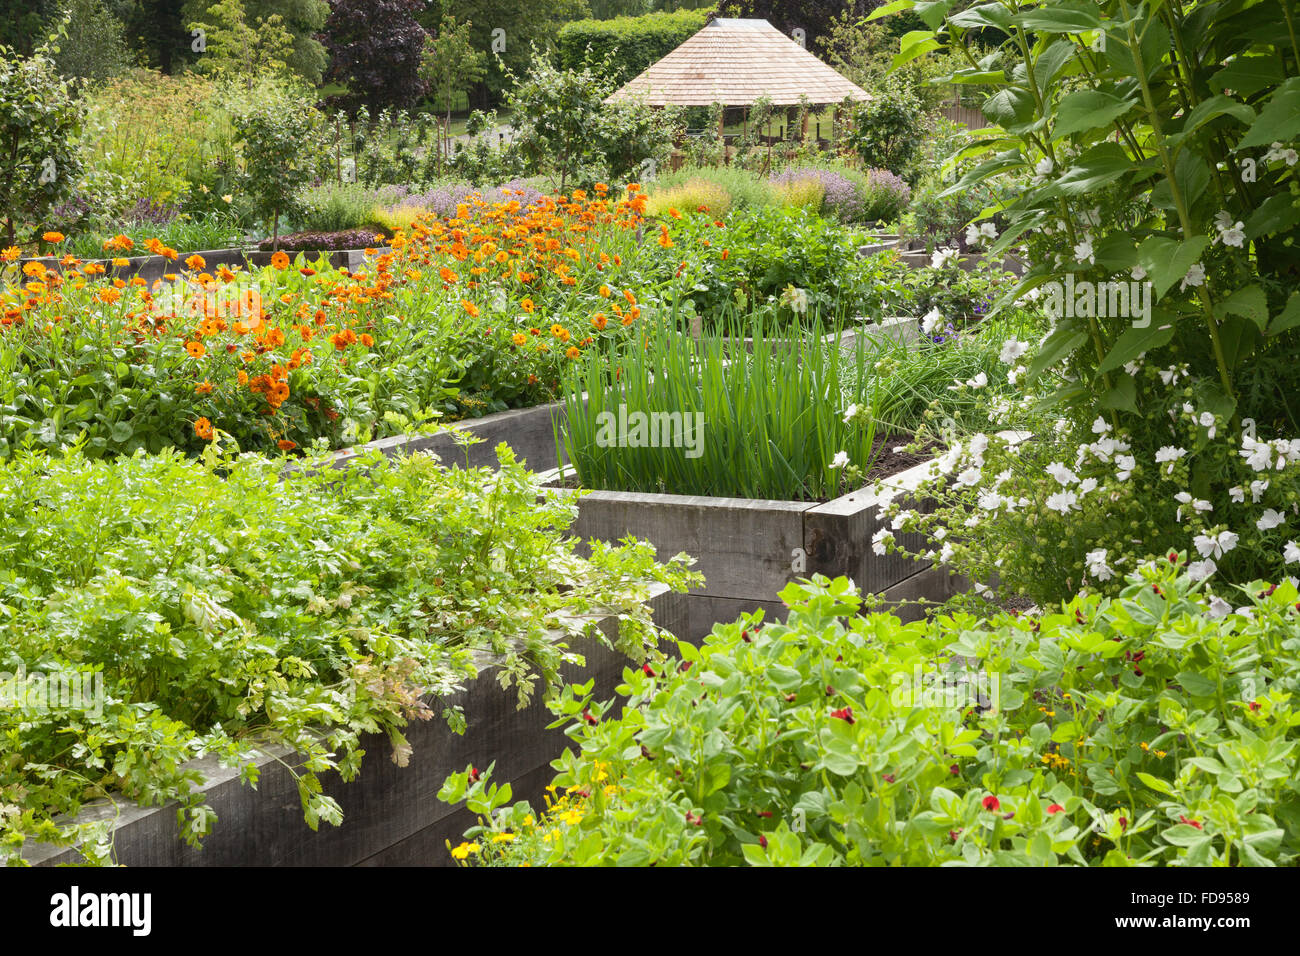 The Kitchen Garden at Rudding Park, North Yorkshire, UK. Summer, July 2015. Stock Photo